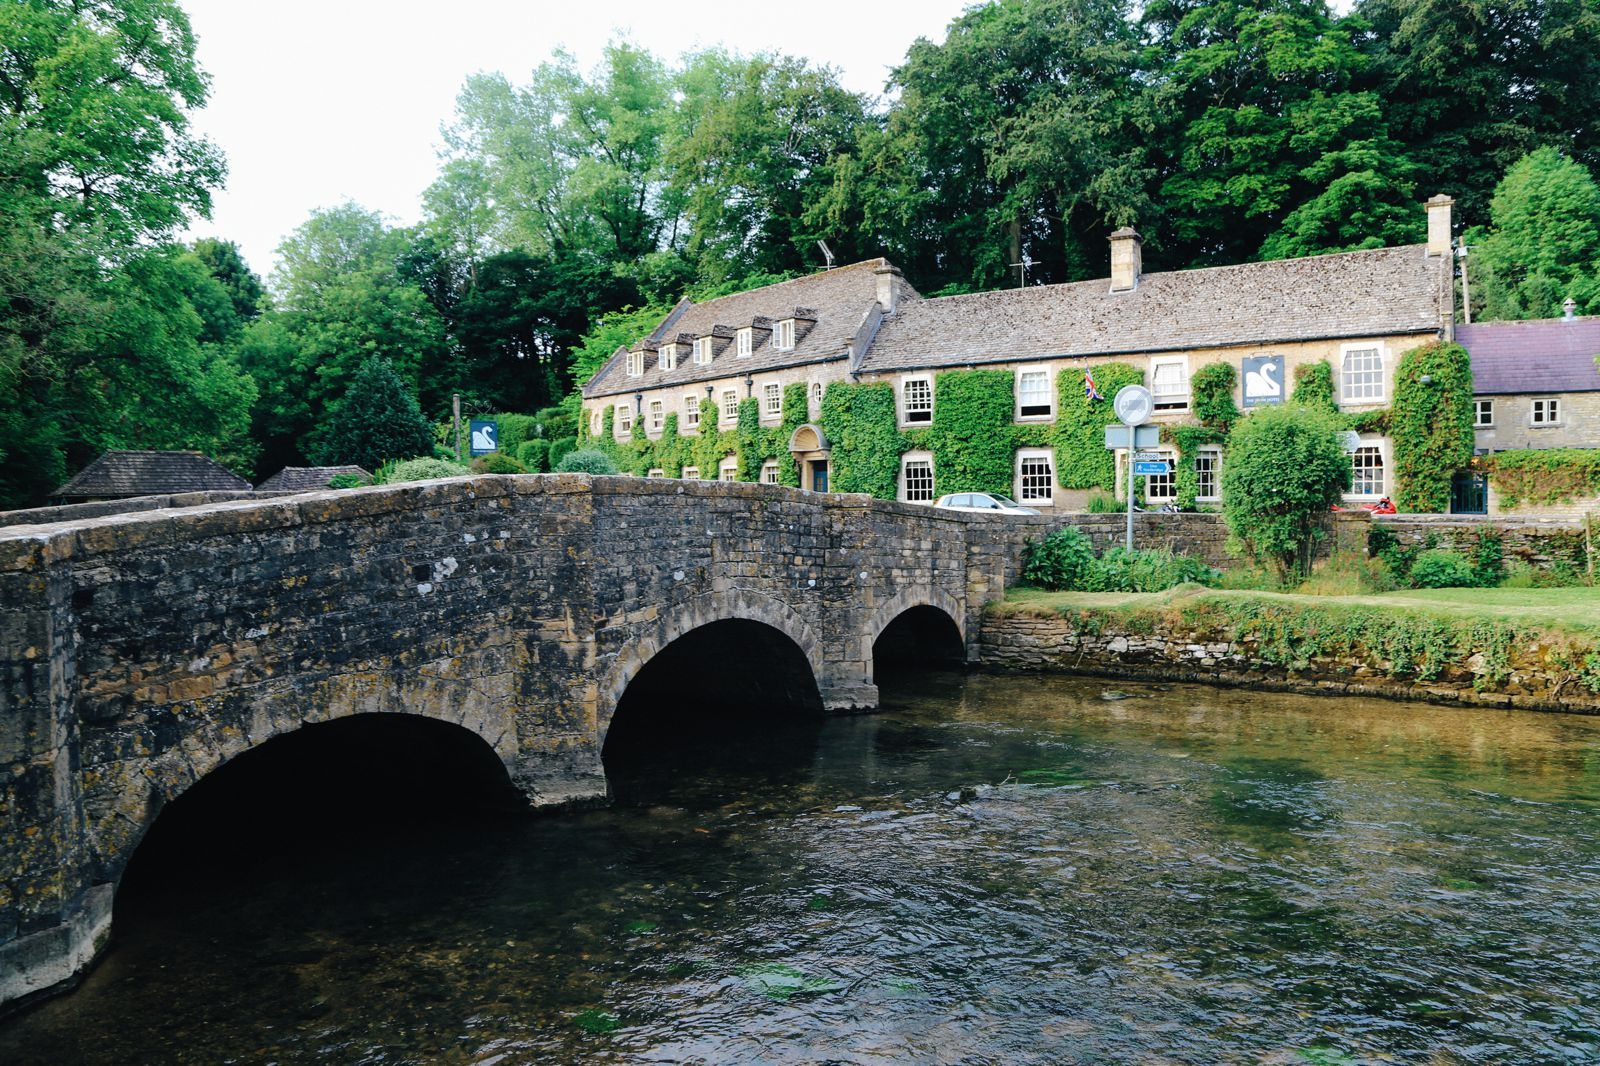 In Search Of The Most Beautiful Street In England - Arlington Row, Bibury (4)